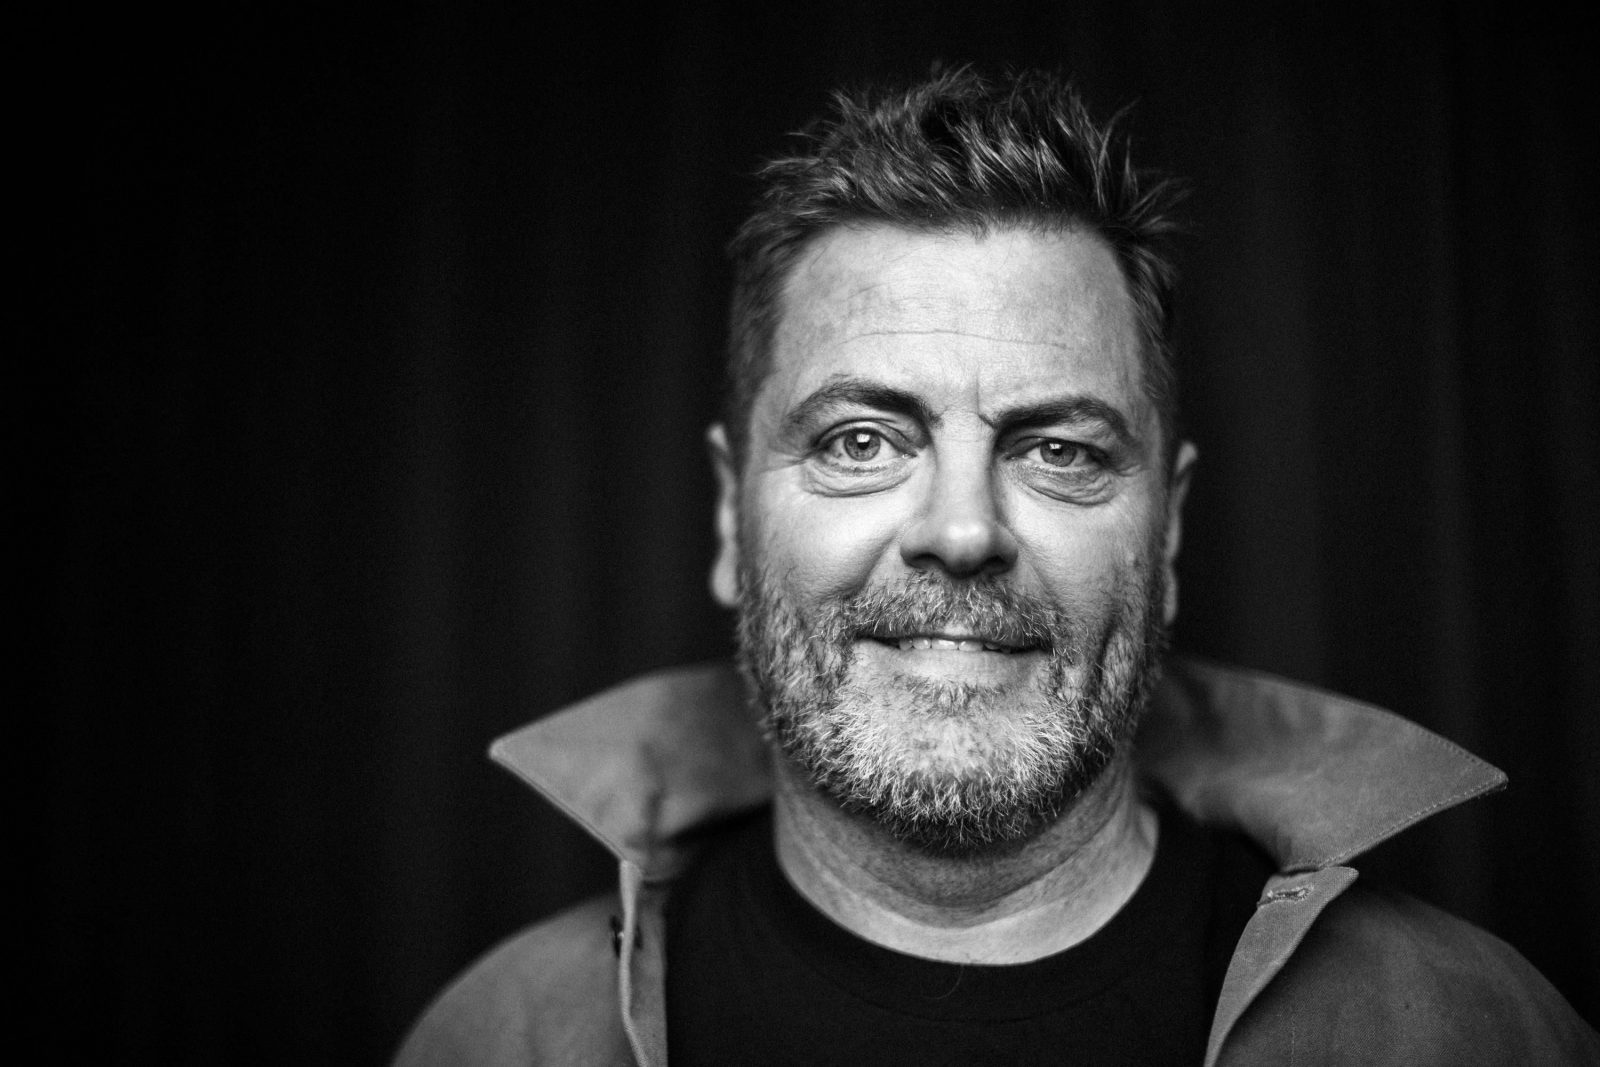 Nick Offerman – All Rise Tour, Burswood, Western Australia